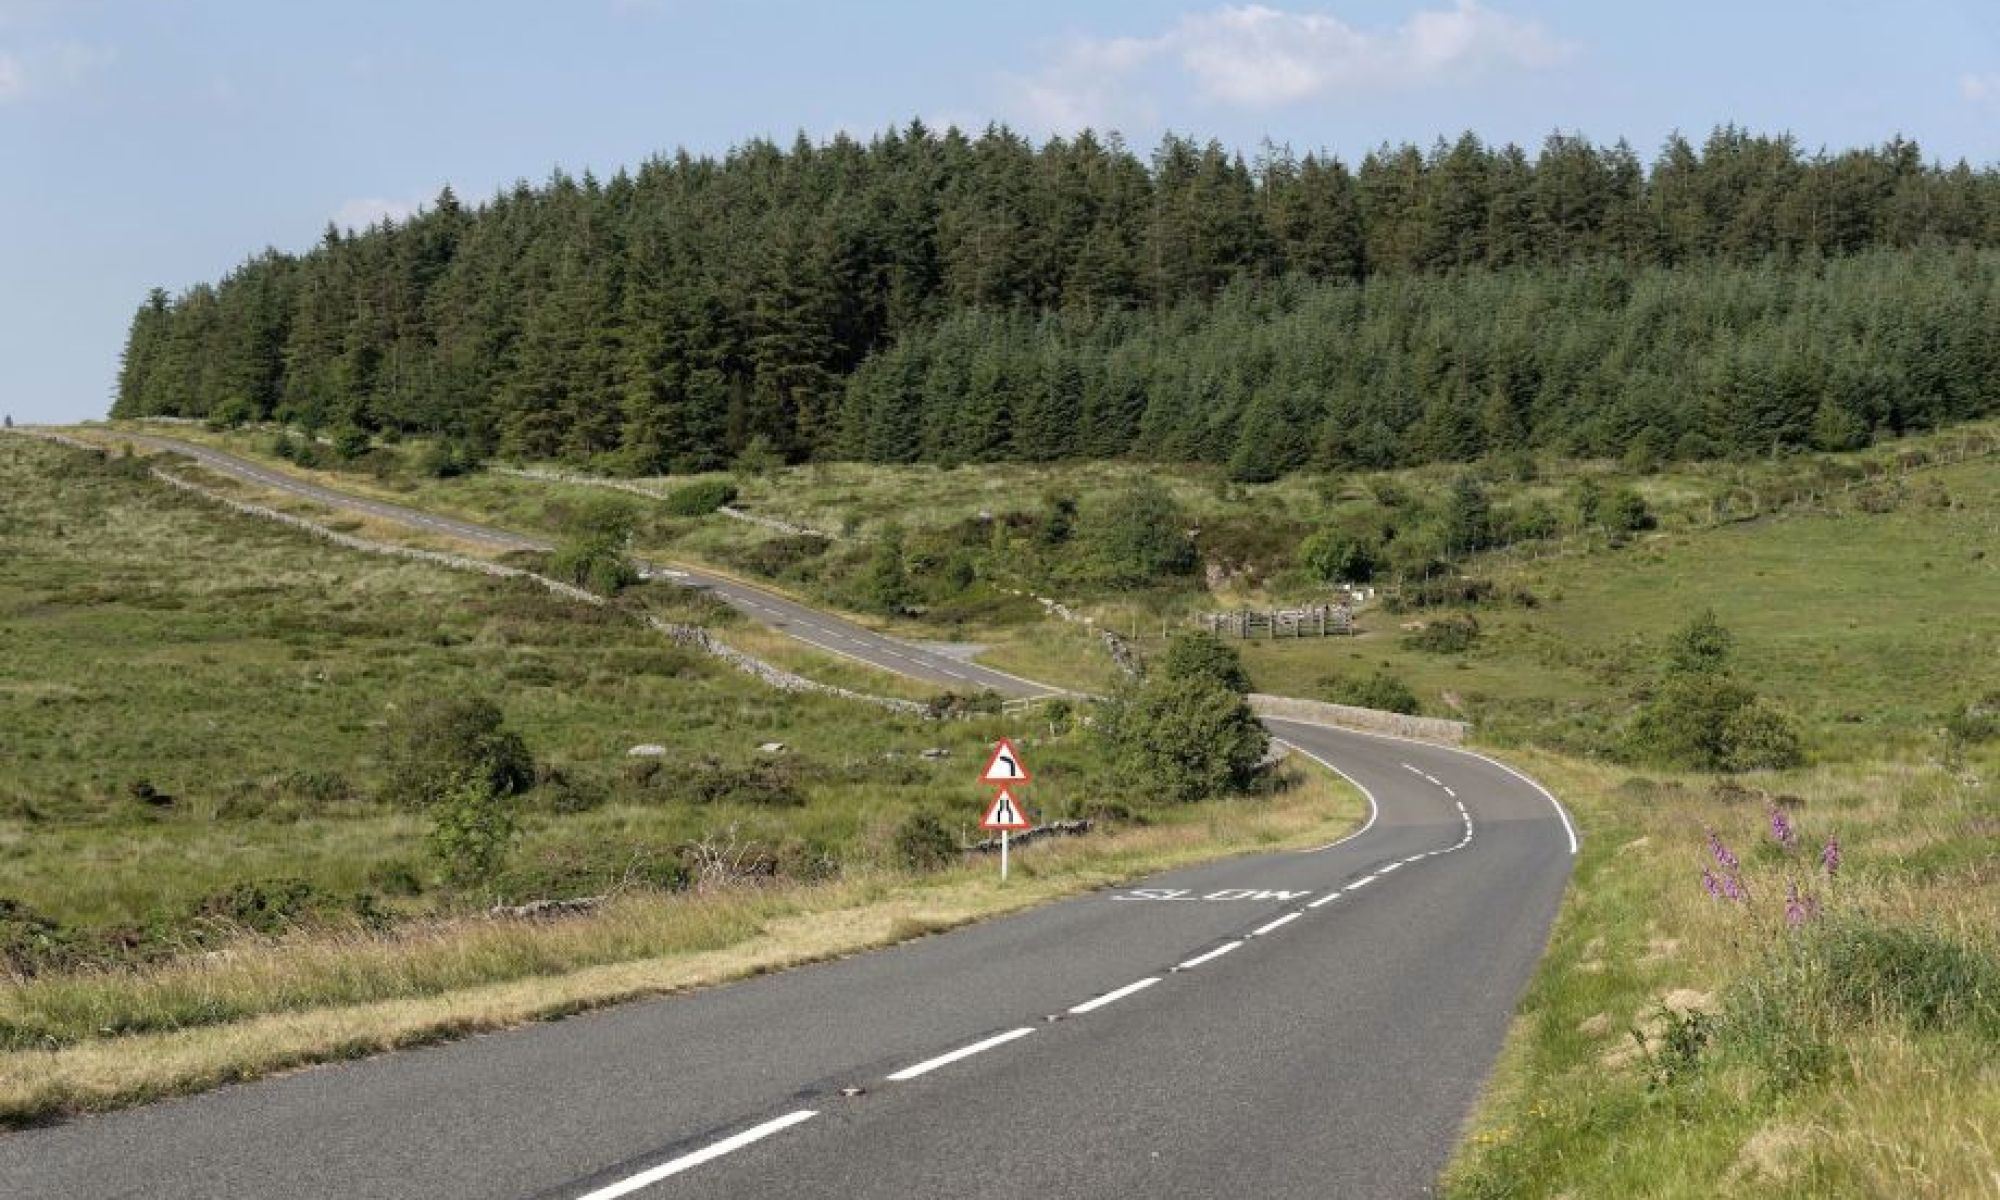 Council uses Strava to repair damaged roads for cyclists